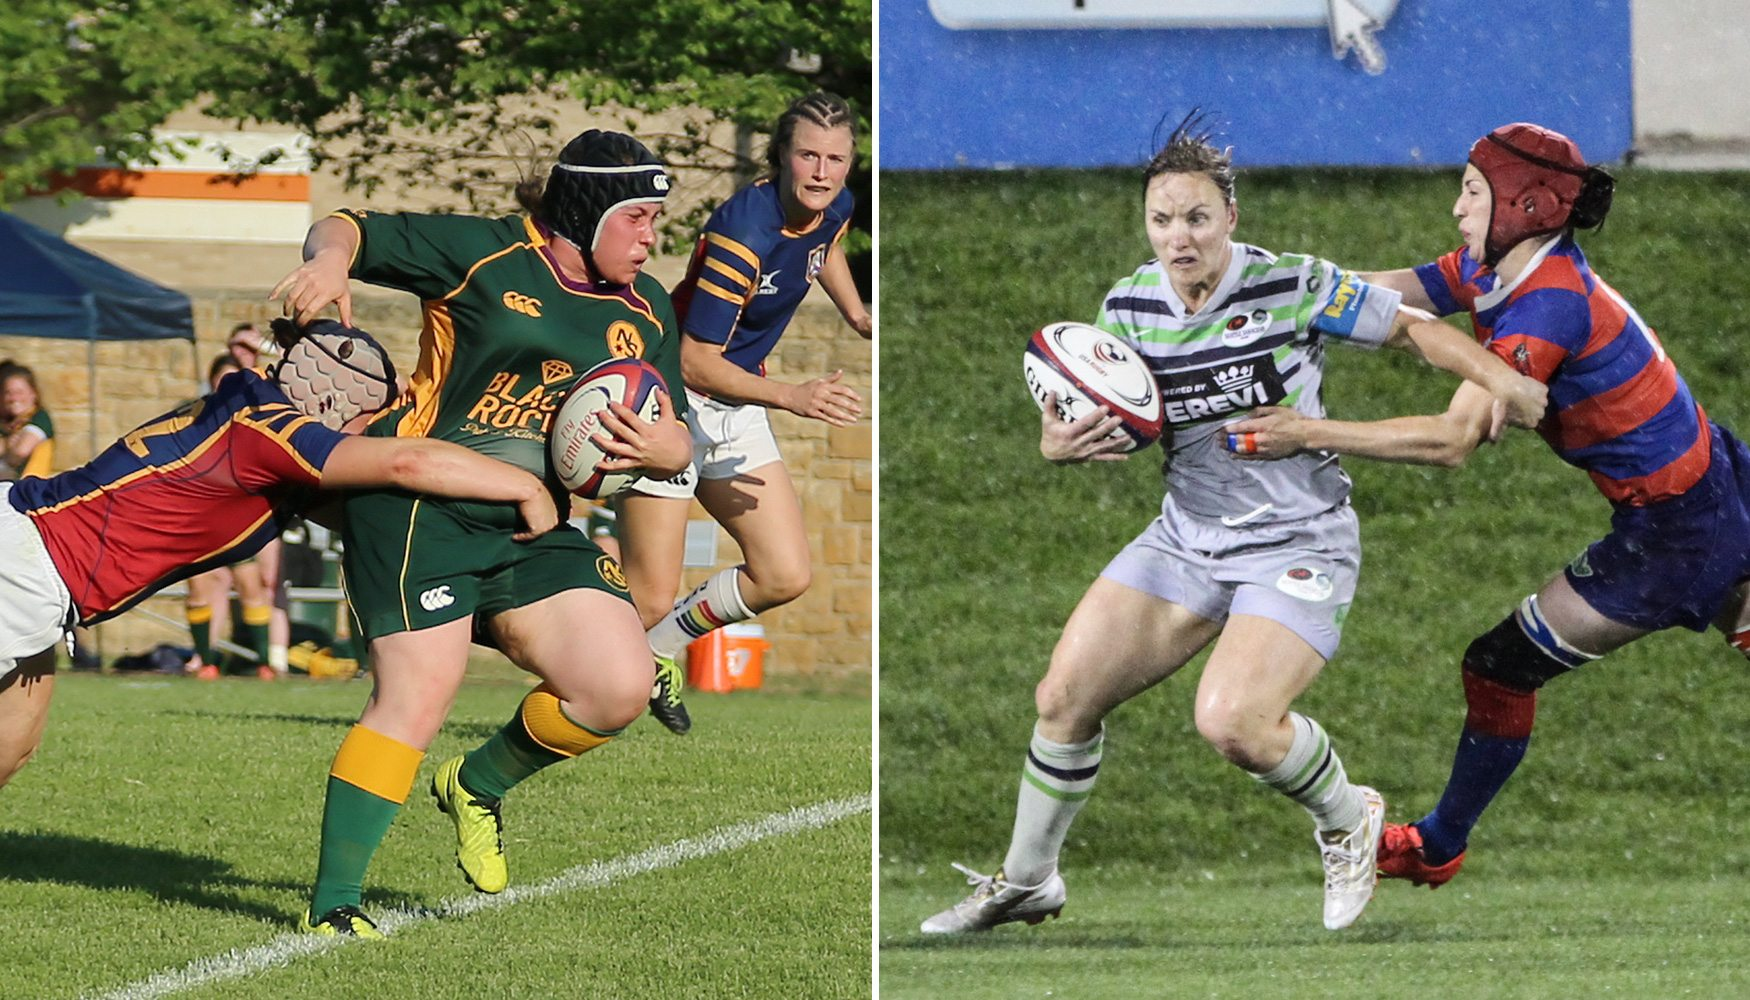 North Shore to put on a show in Women's DI National Championship versus Saracens